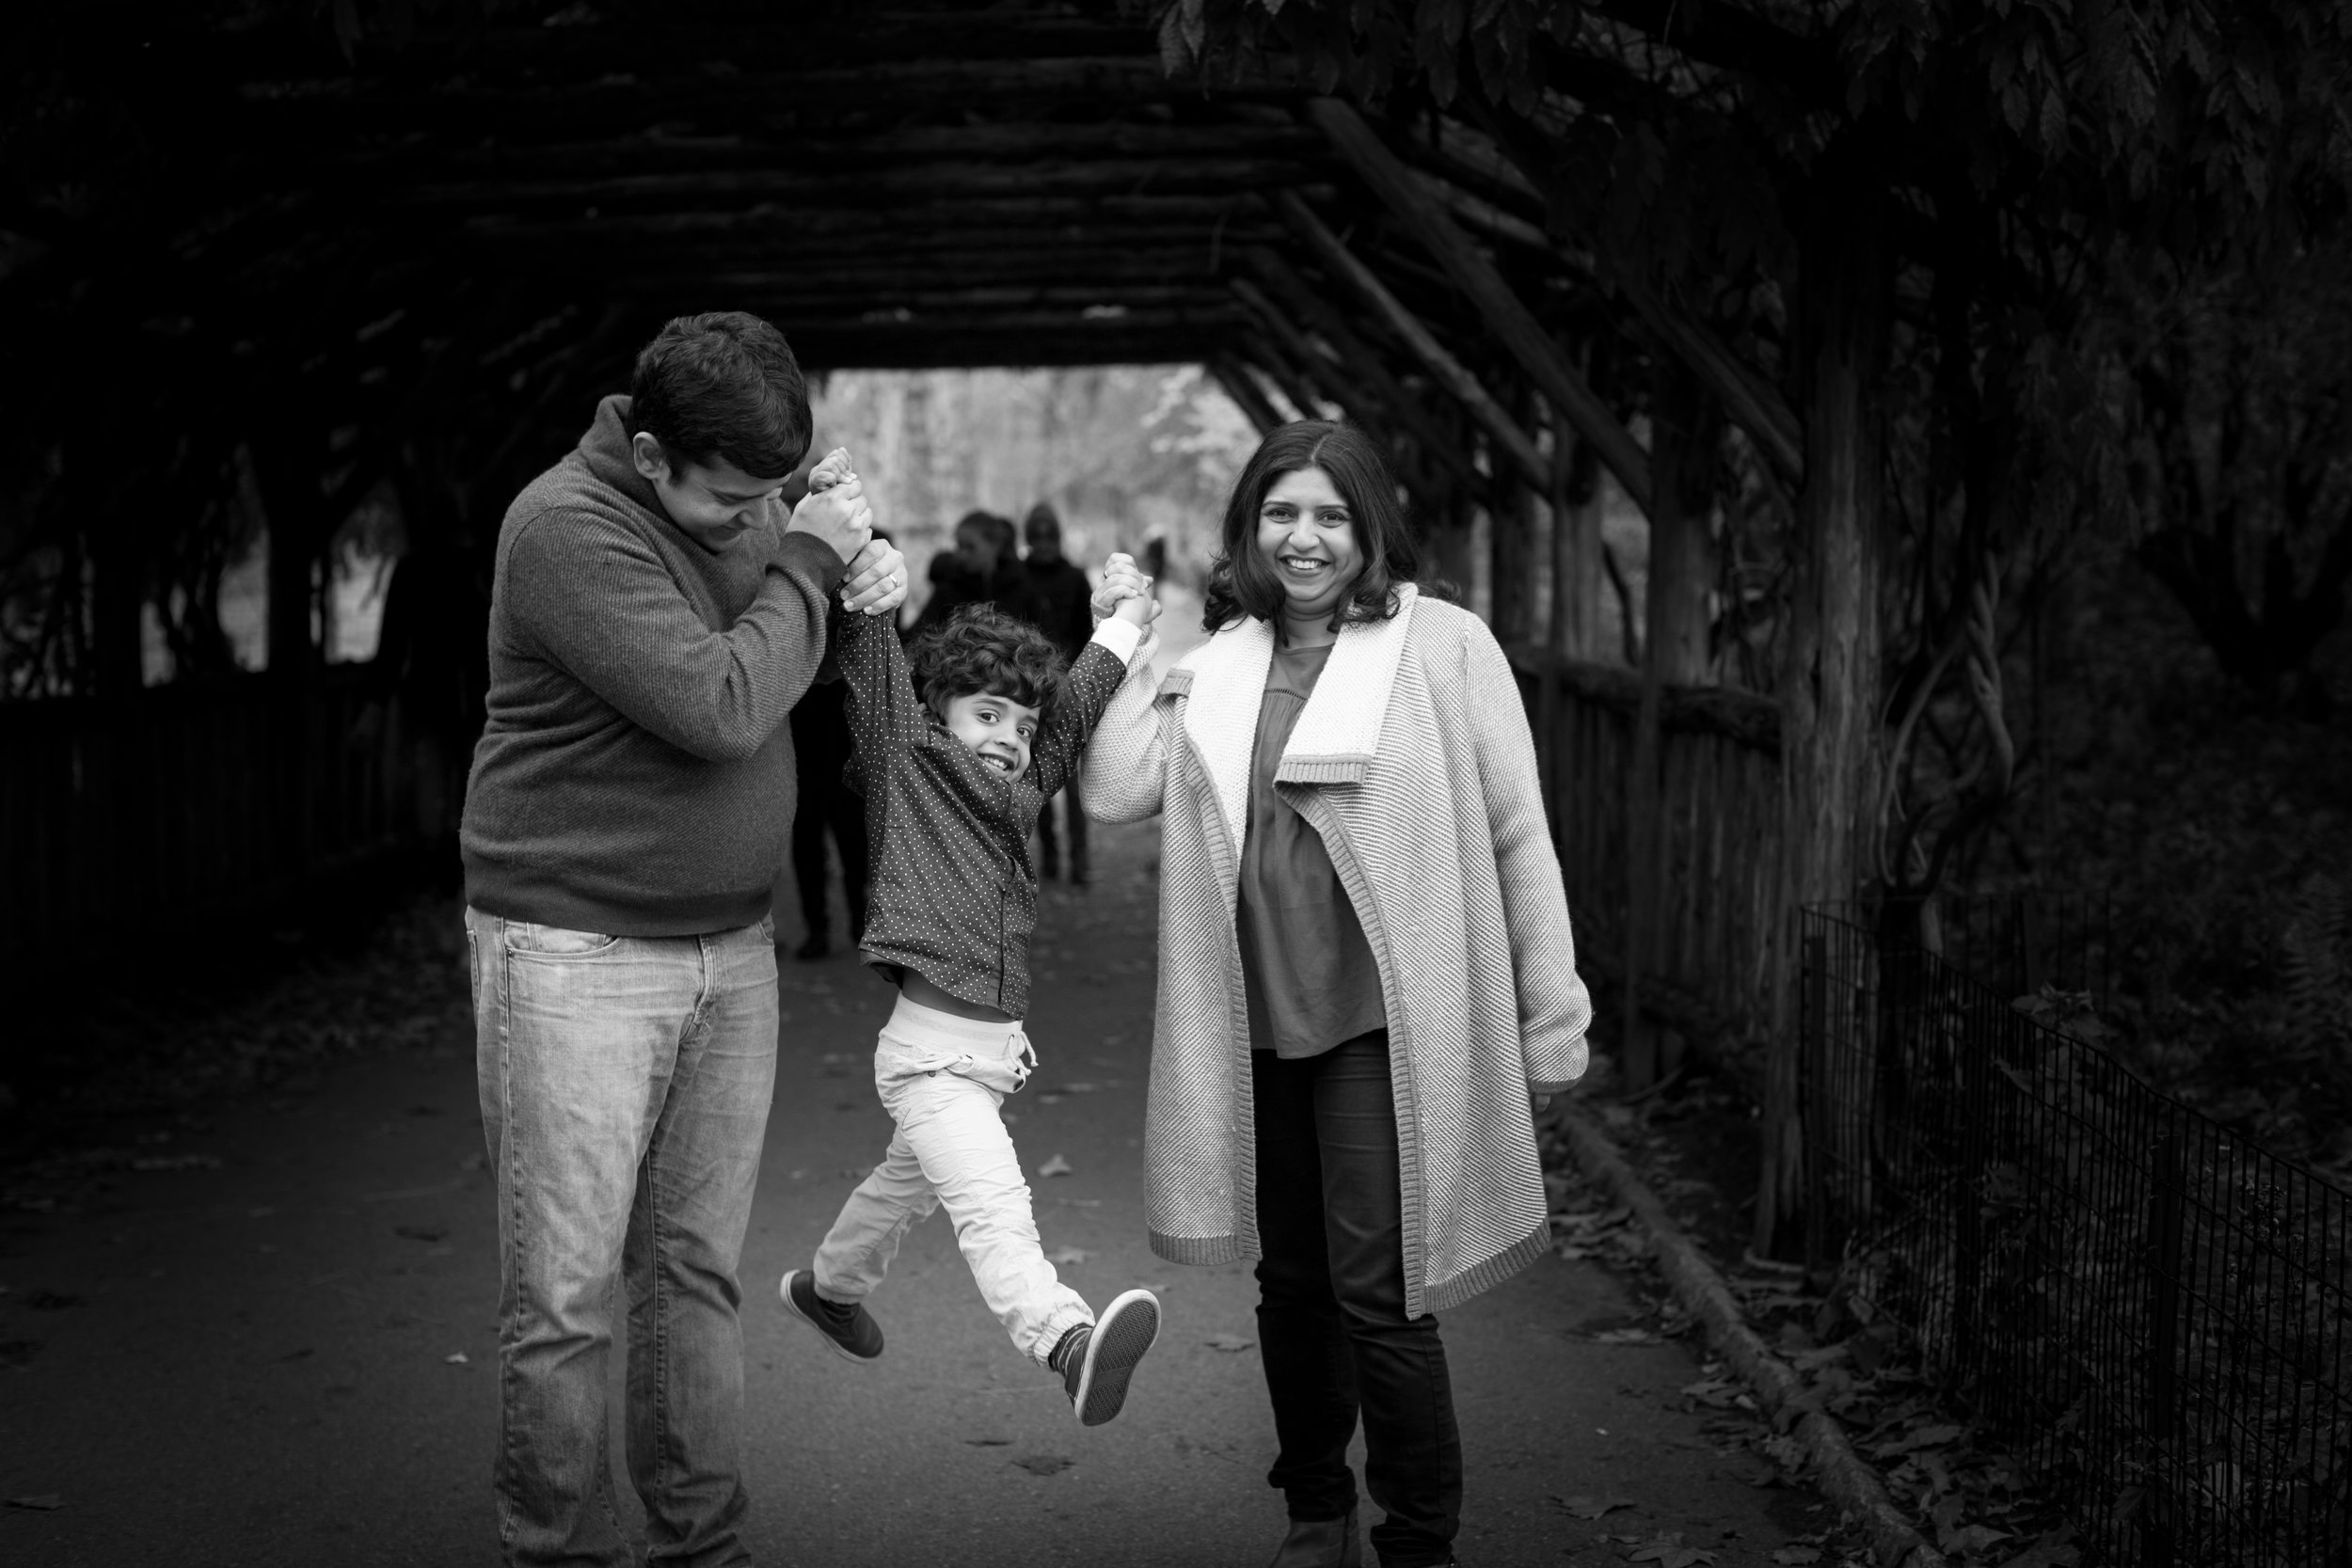 Manhattanfamilyphotography.jpg